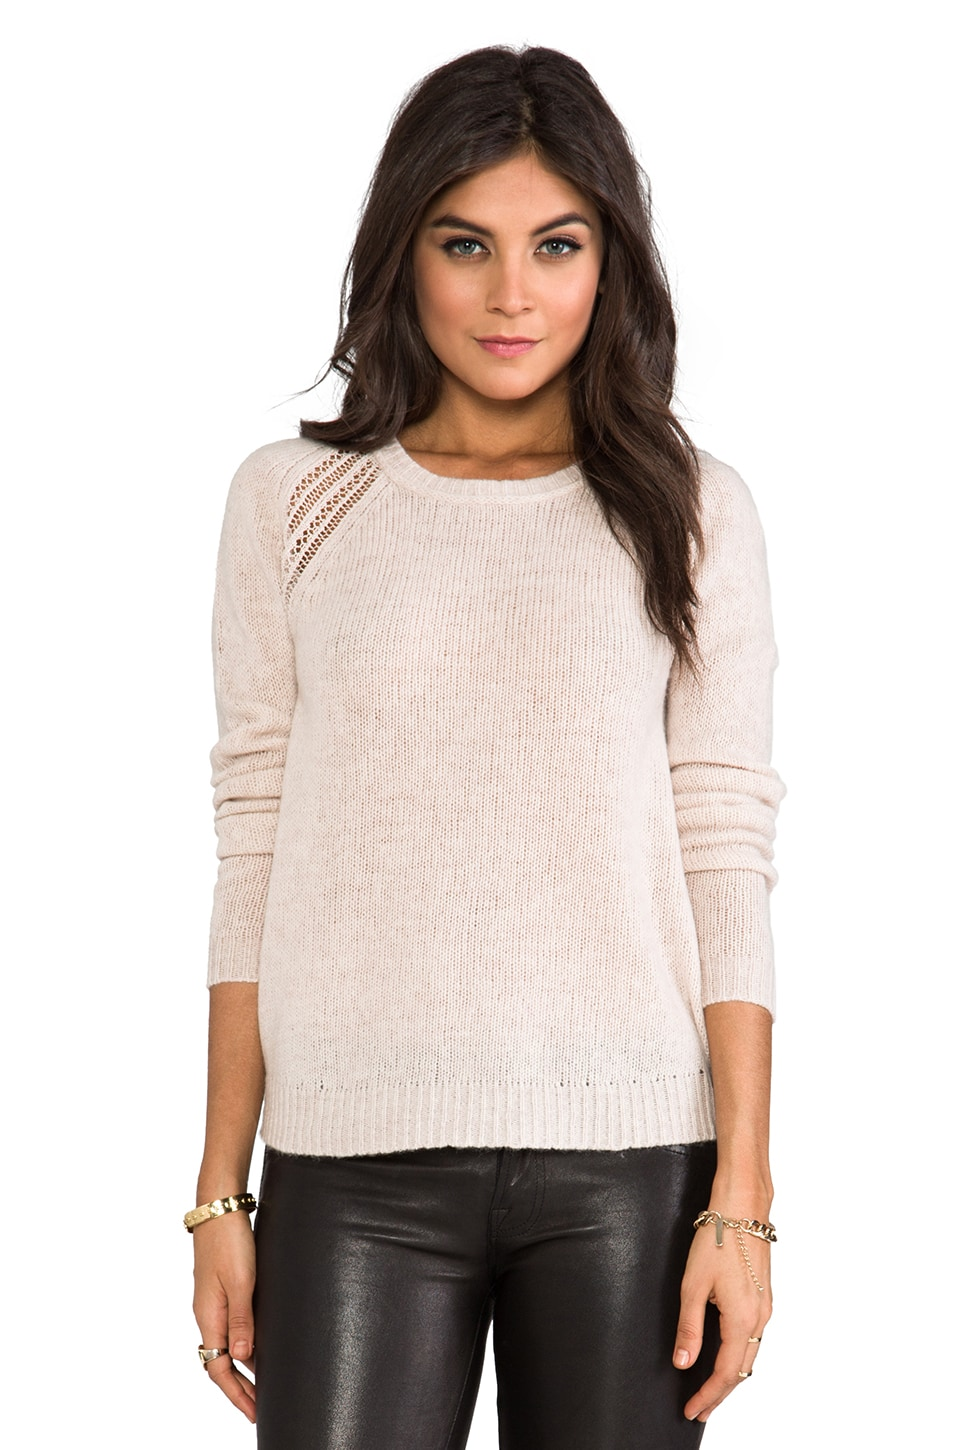 Velvet by Graham & Spencer Velvet Helia Cashmere Blend Sweater in Wheat